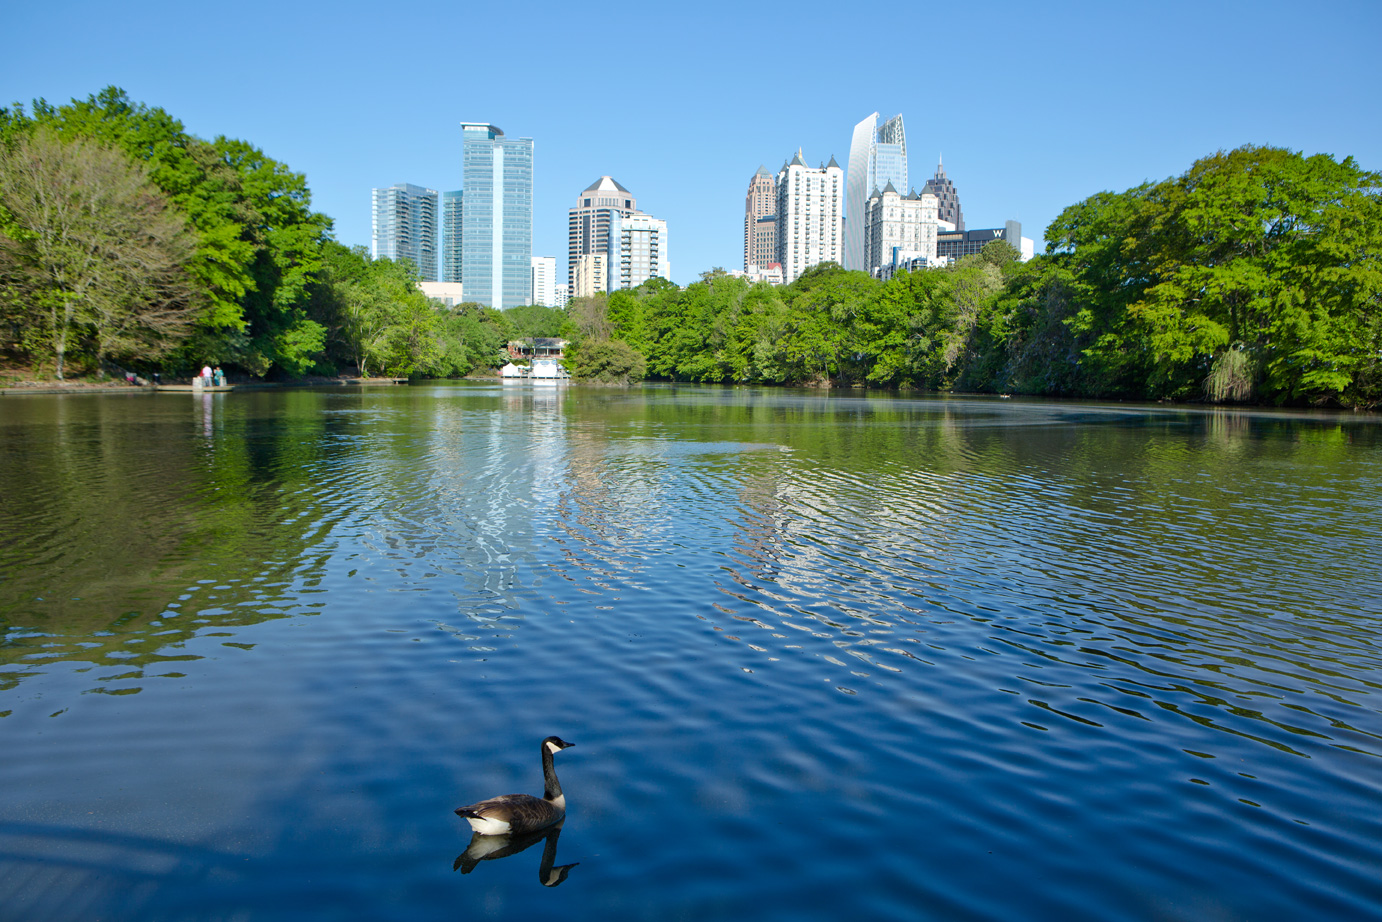 Summer time in the city at Atlanta's Piedmont Park